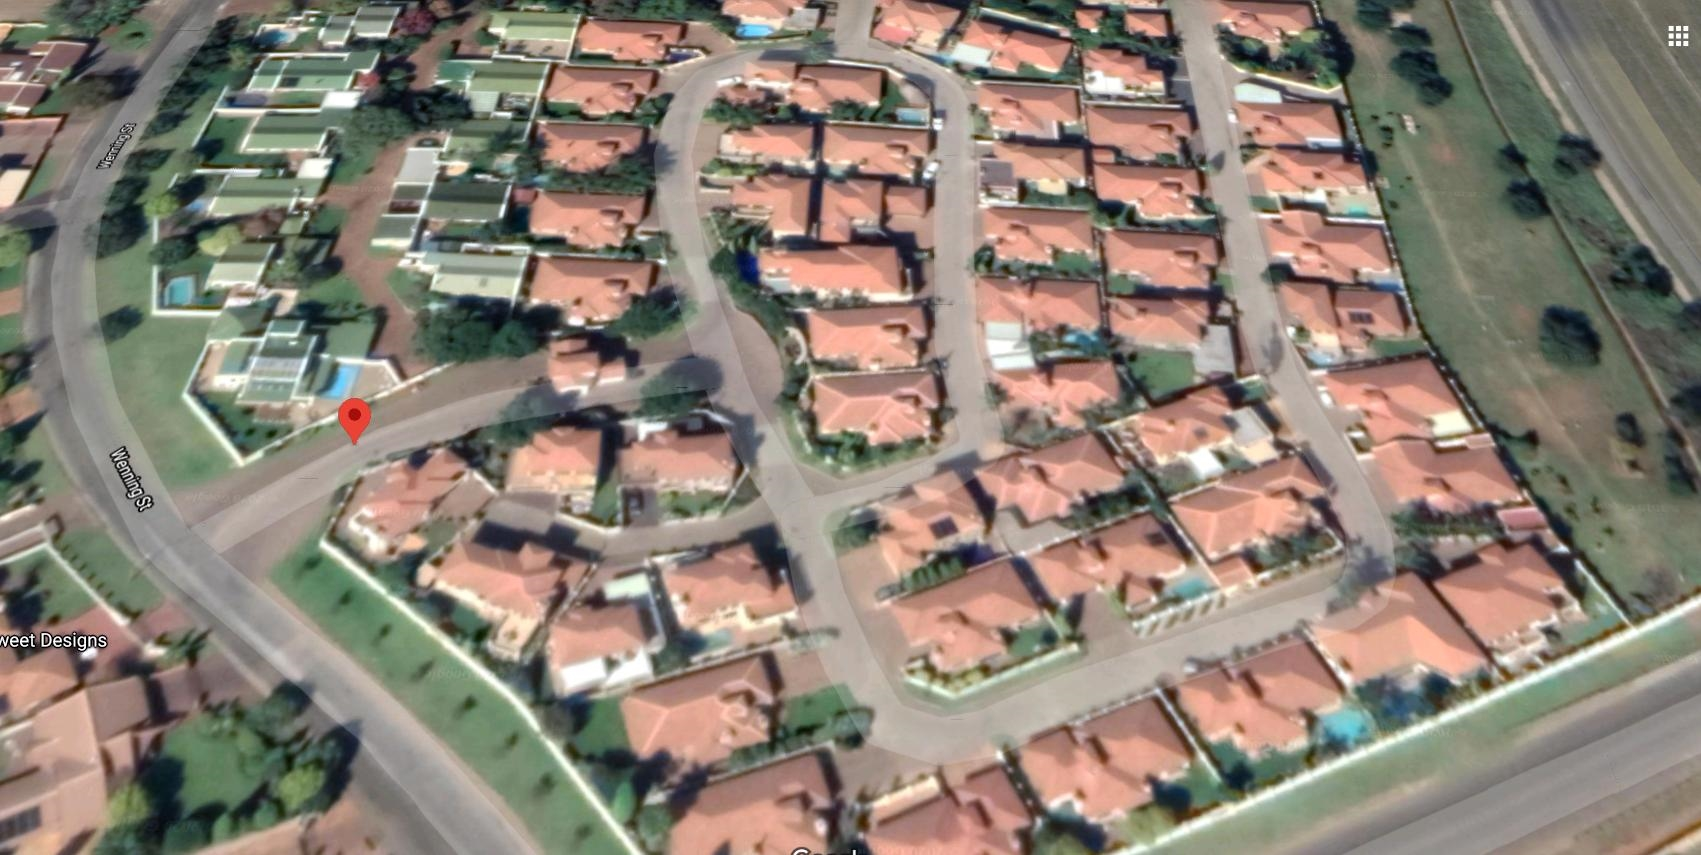 Aerial view of units in Estate